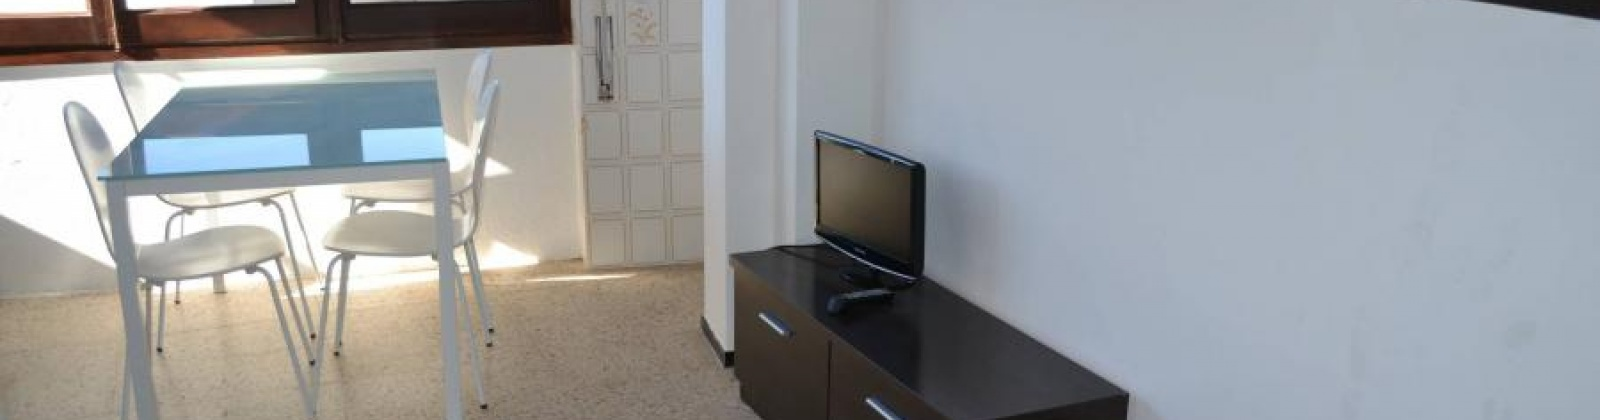 16 Roger de flor,Llançà,Catalonia 17490,2 Bedrooms Bedrooms,1 BathroomBathrooms,Apartment,Roger de flor,1004